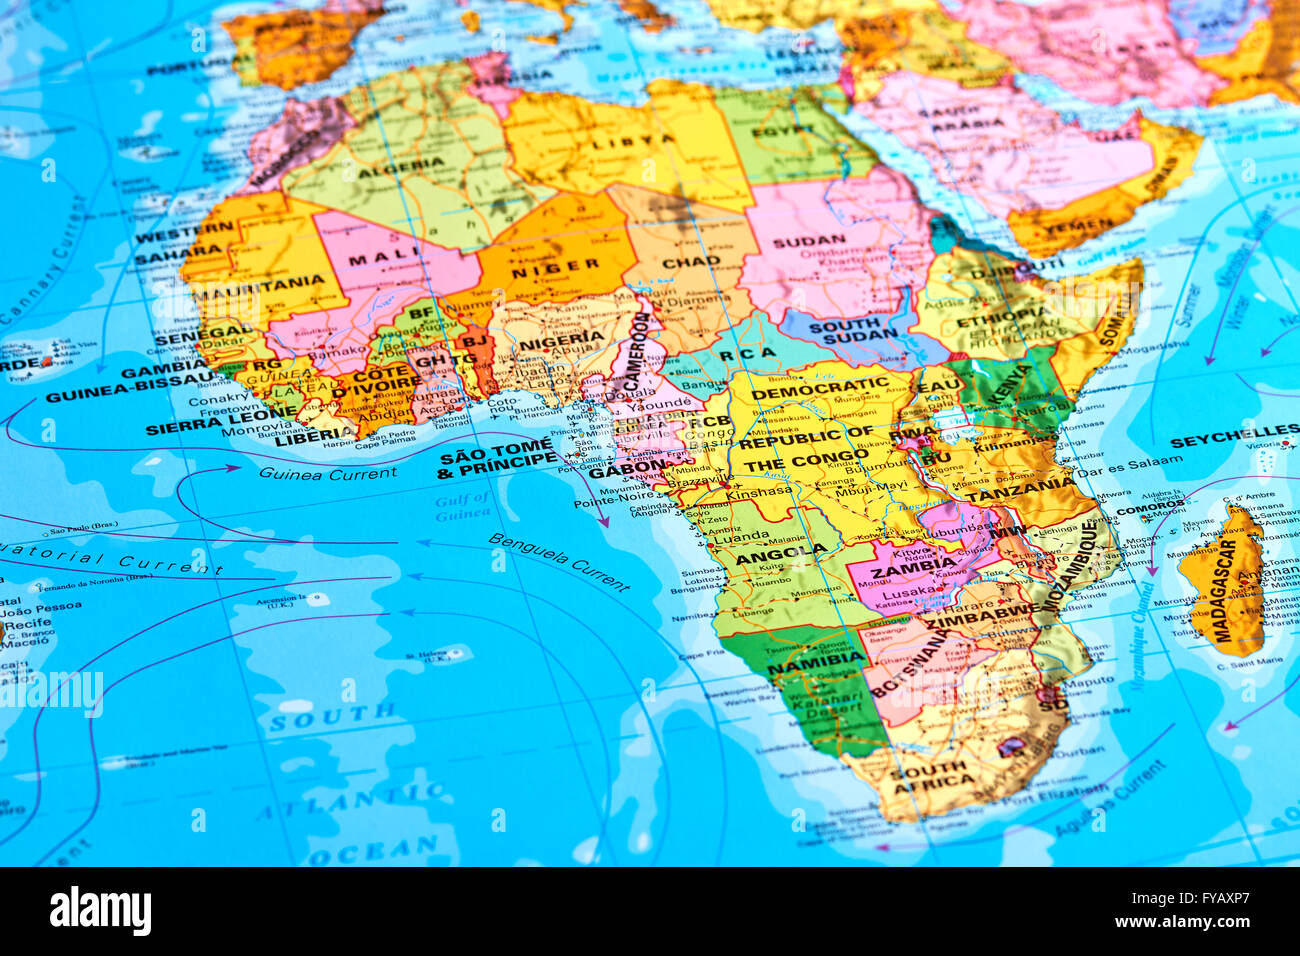 Africa Oldest Continent On The World Map Stock Photo Royalty - Current world map